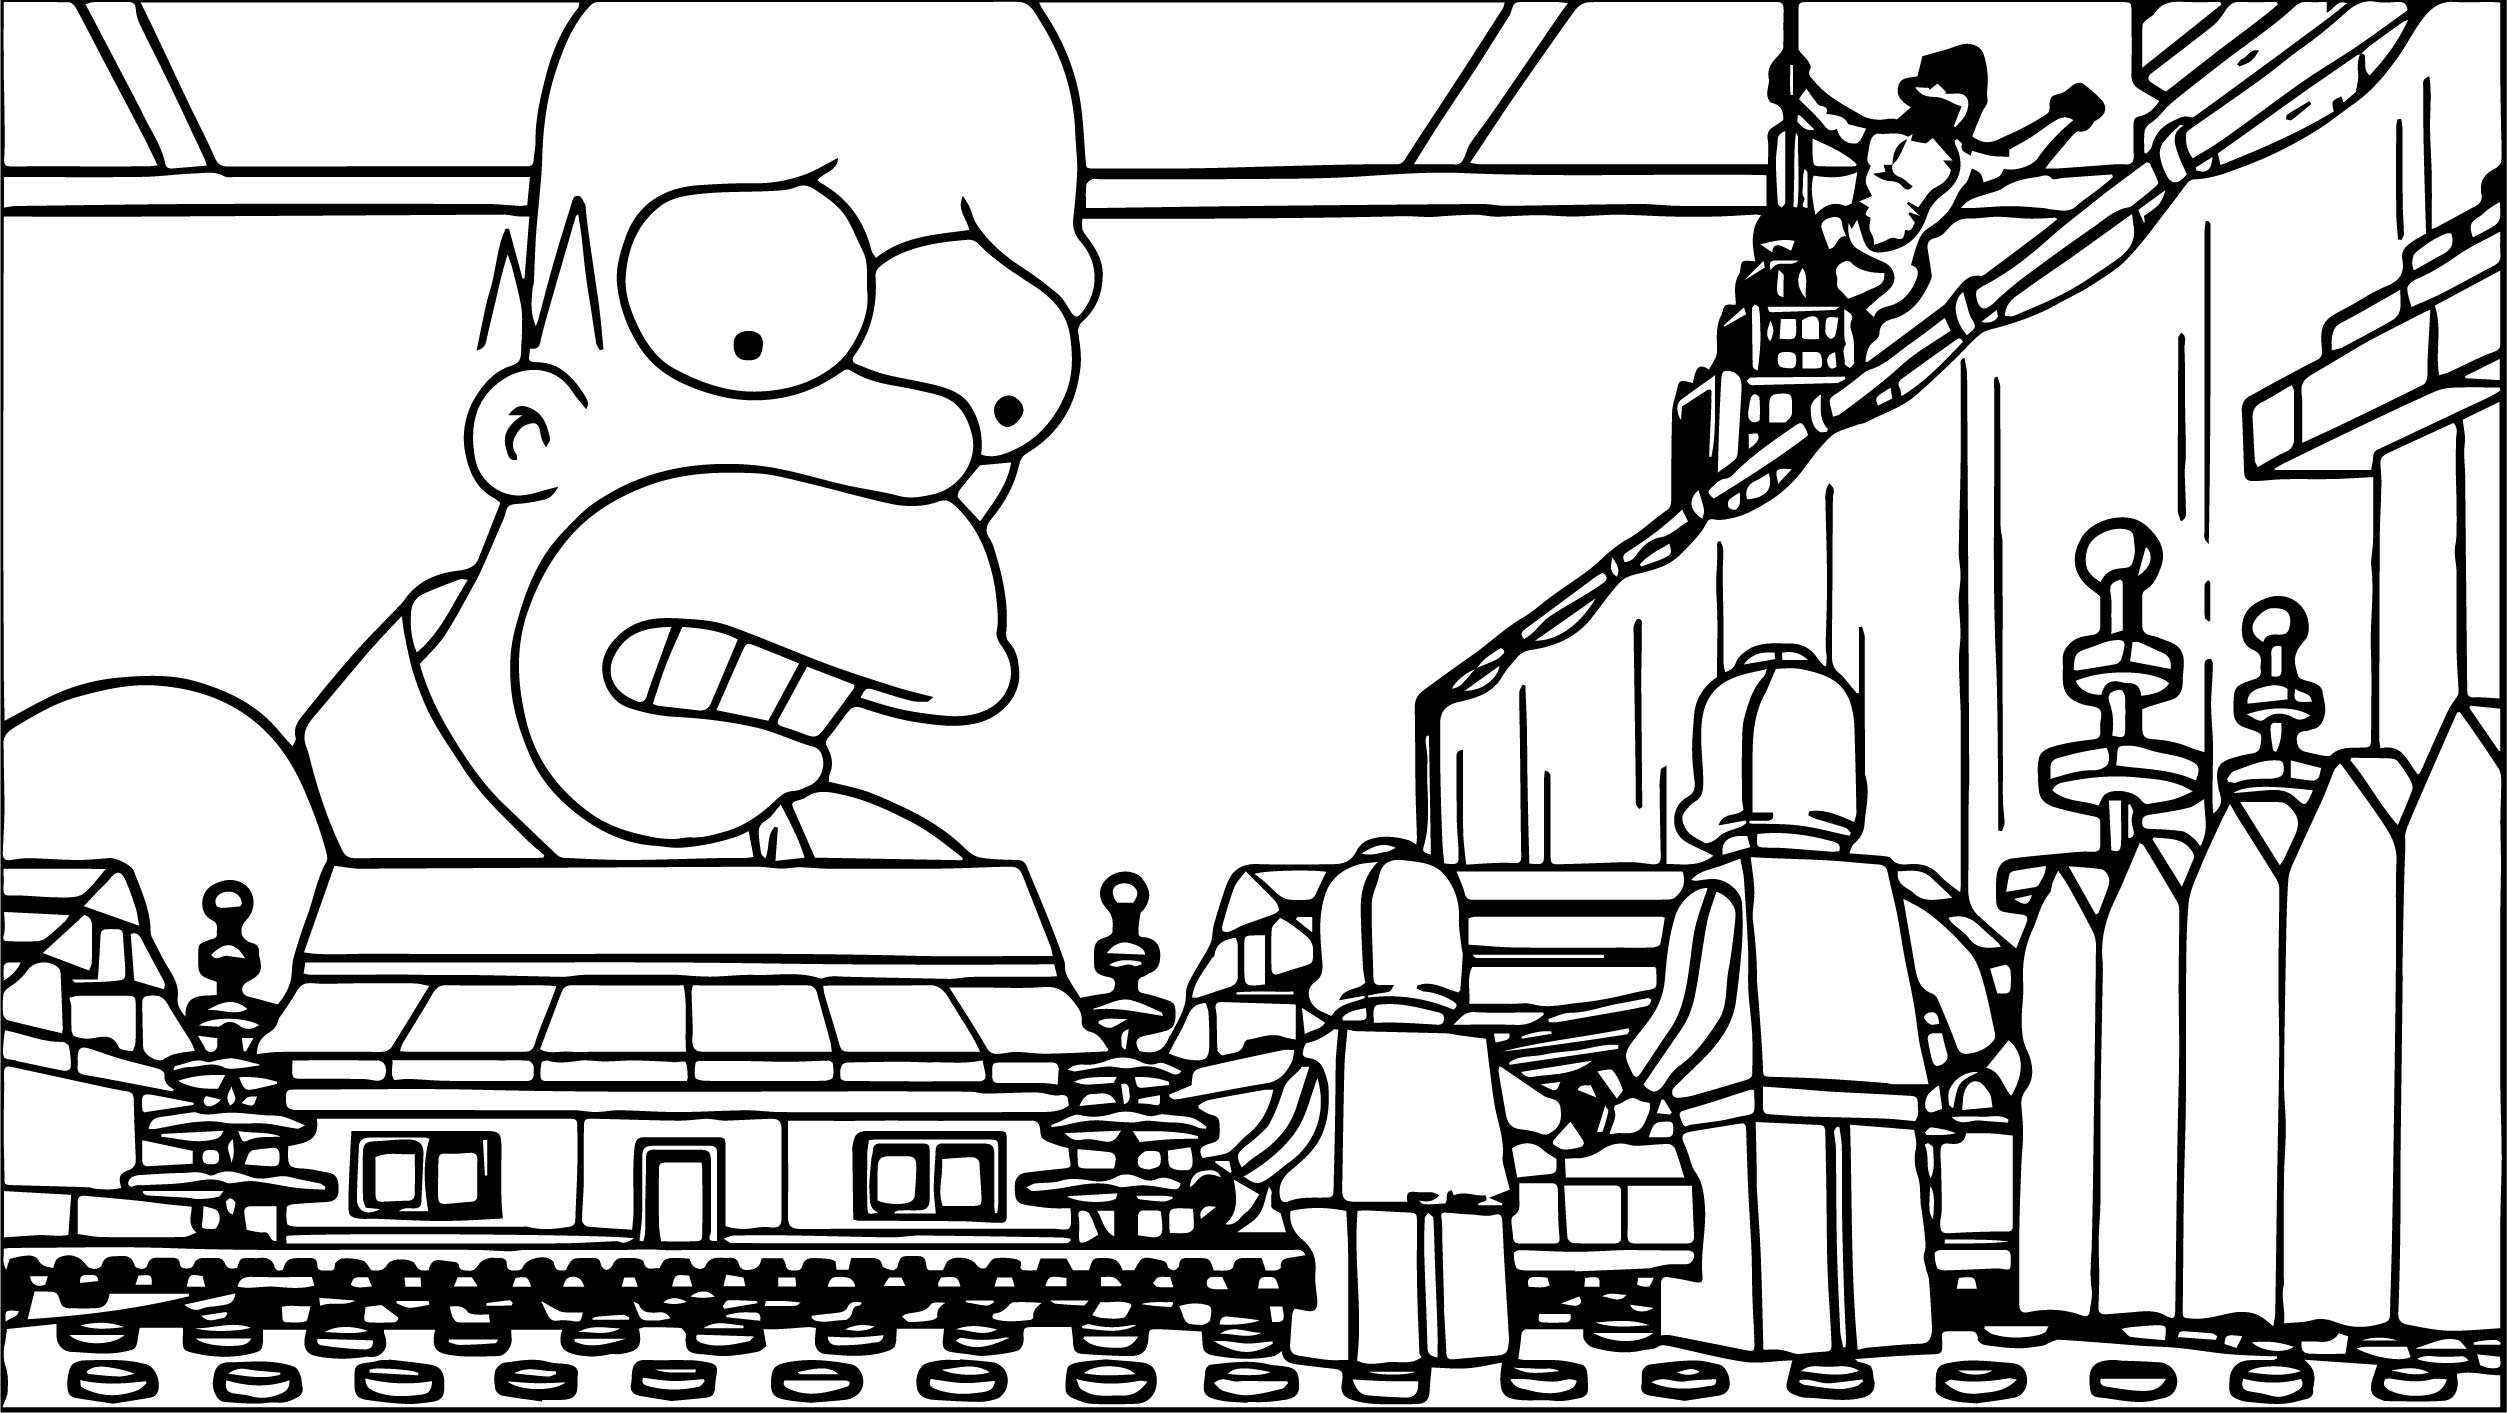 Lego The Simpsons Coloring Page | Wecoloringpage